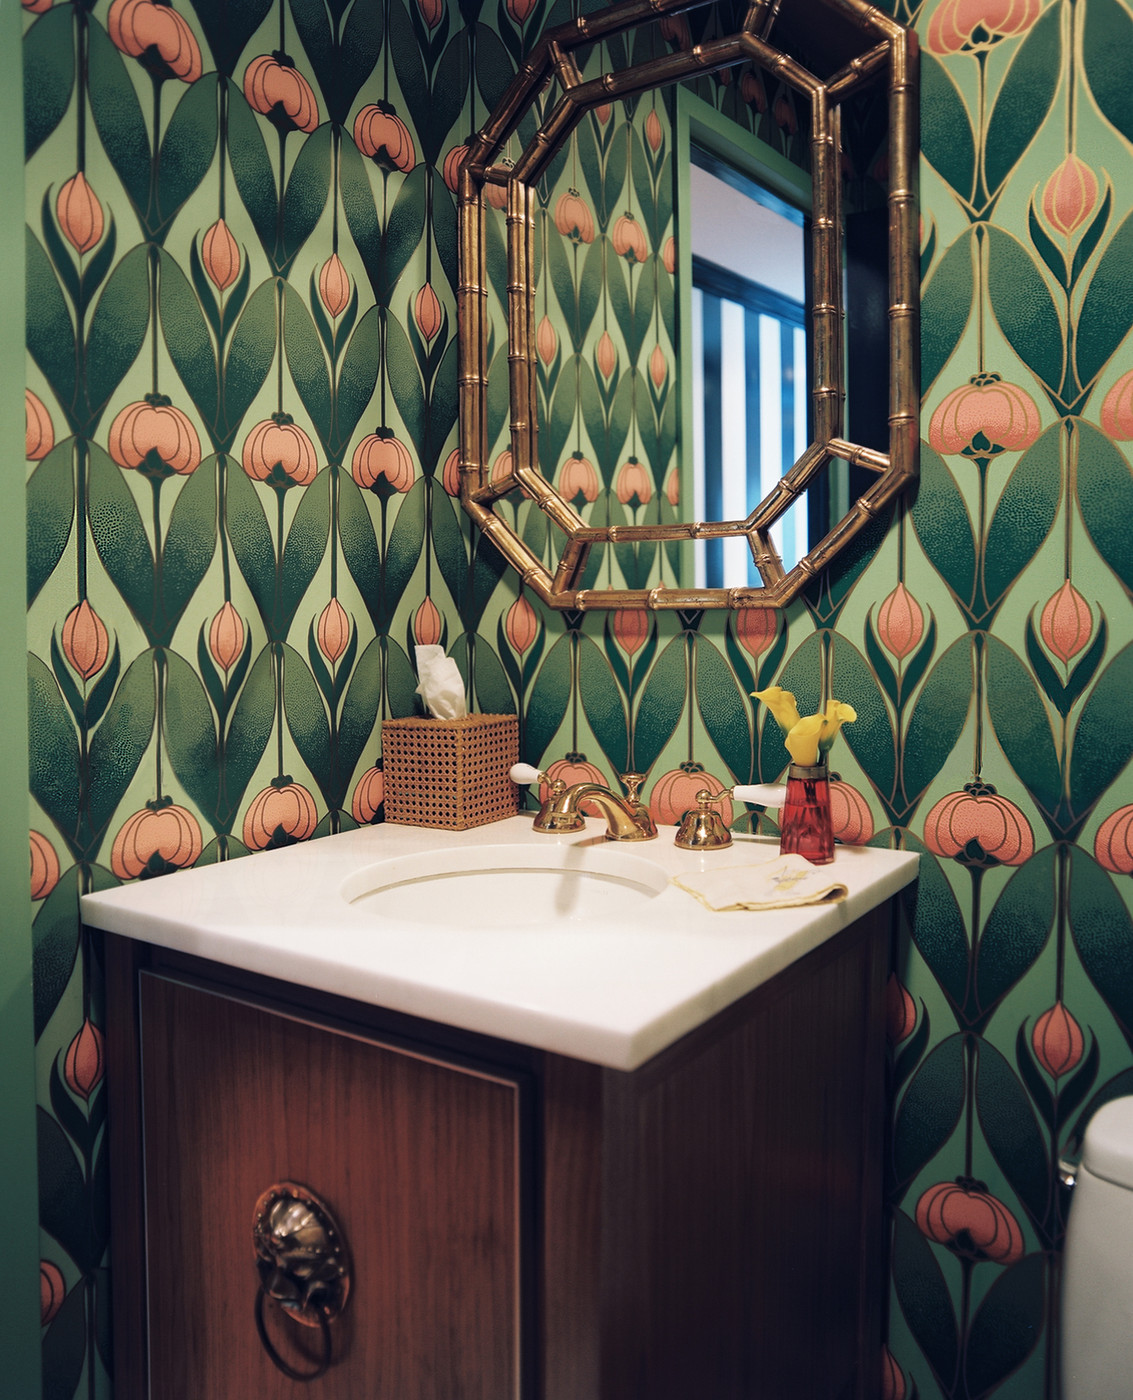 Art deco powder room wallpaper design ideas lonny for Wall and deco